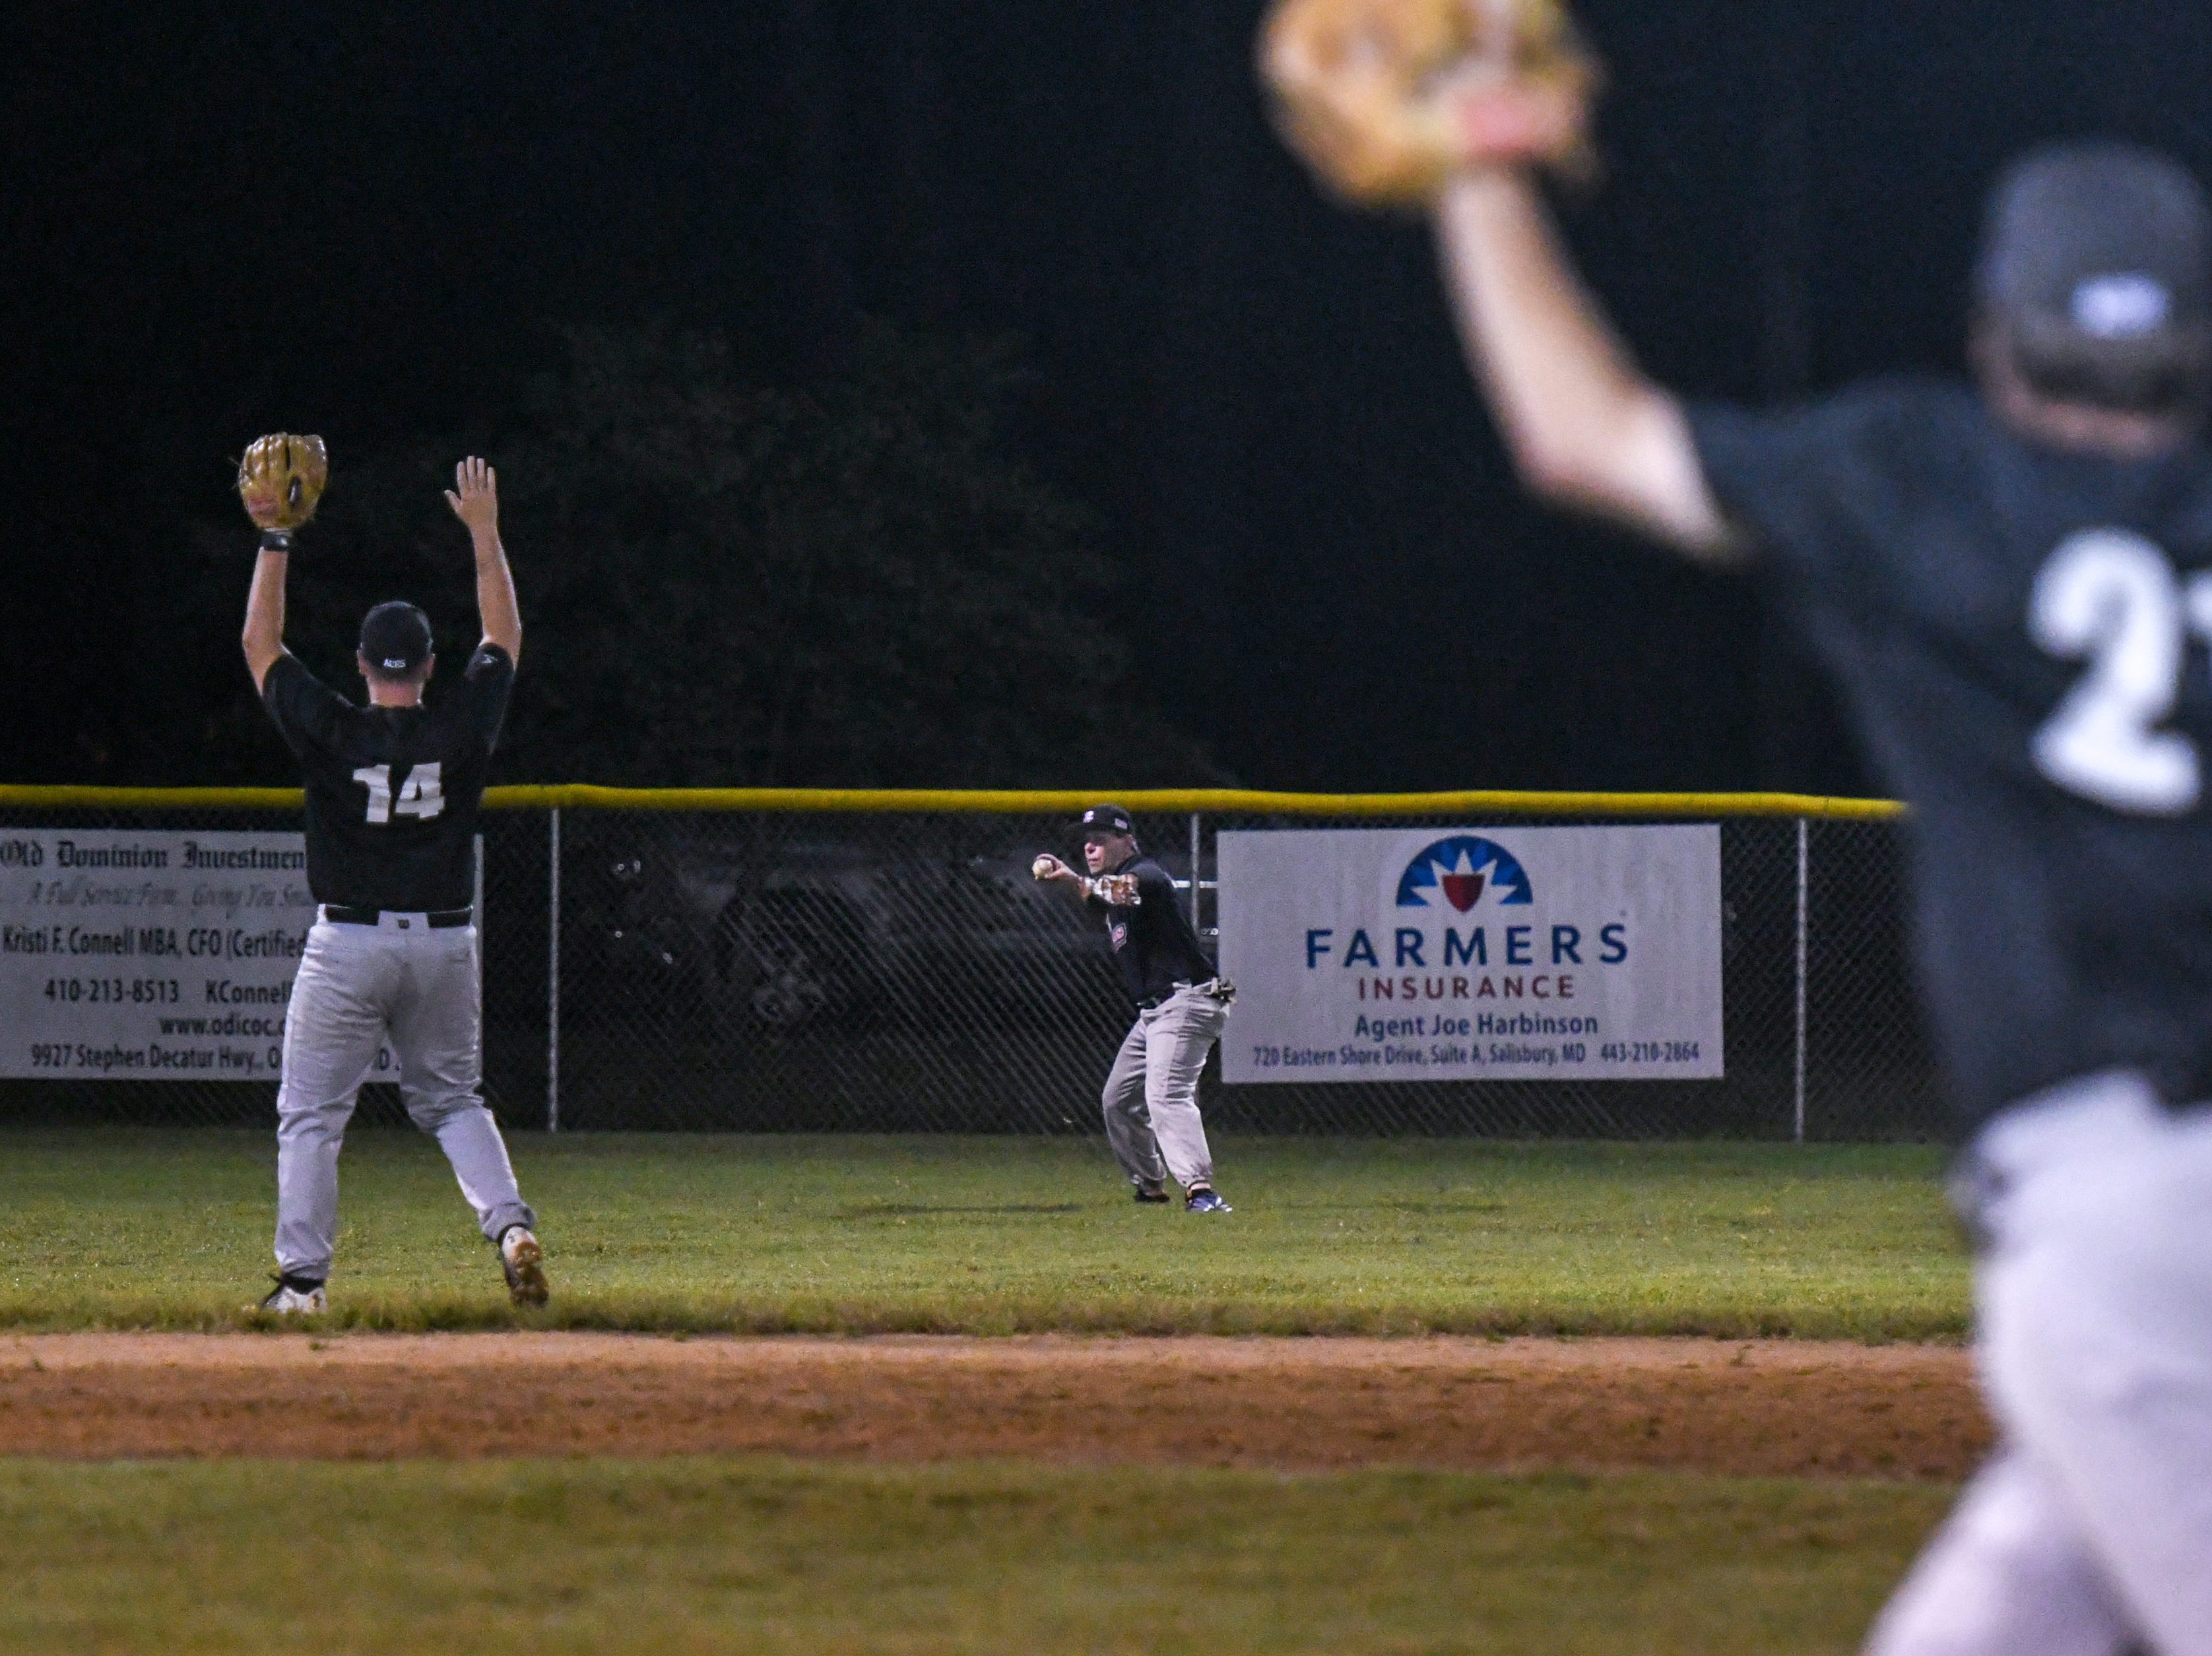 Players in the new Ty Cobb Senior Baseball League competed in two games in Salisbury on Tuesday, Oct 9, 2018.